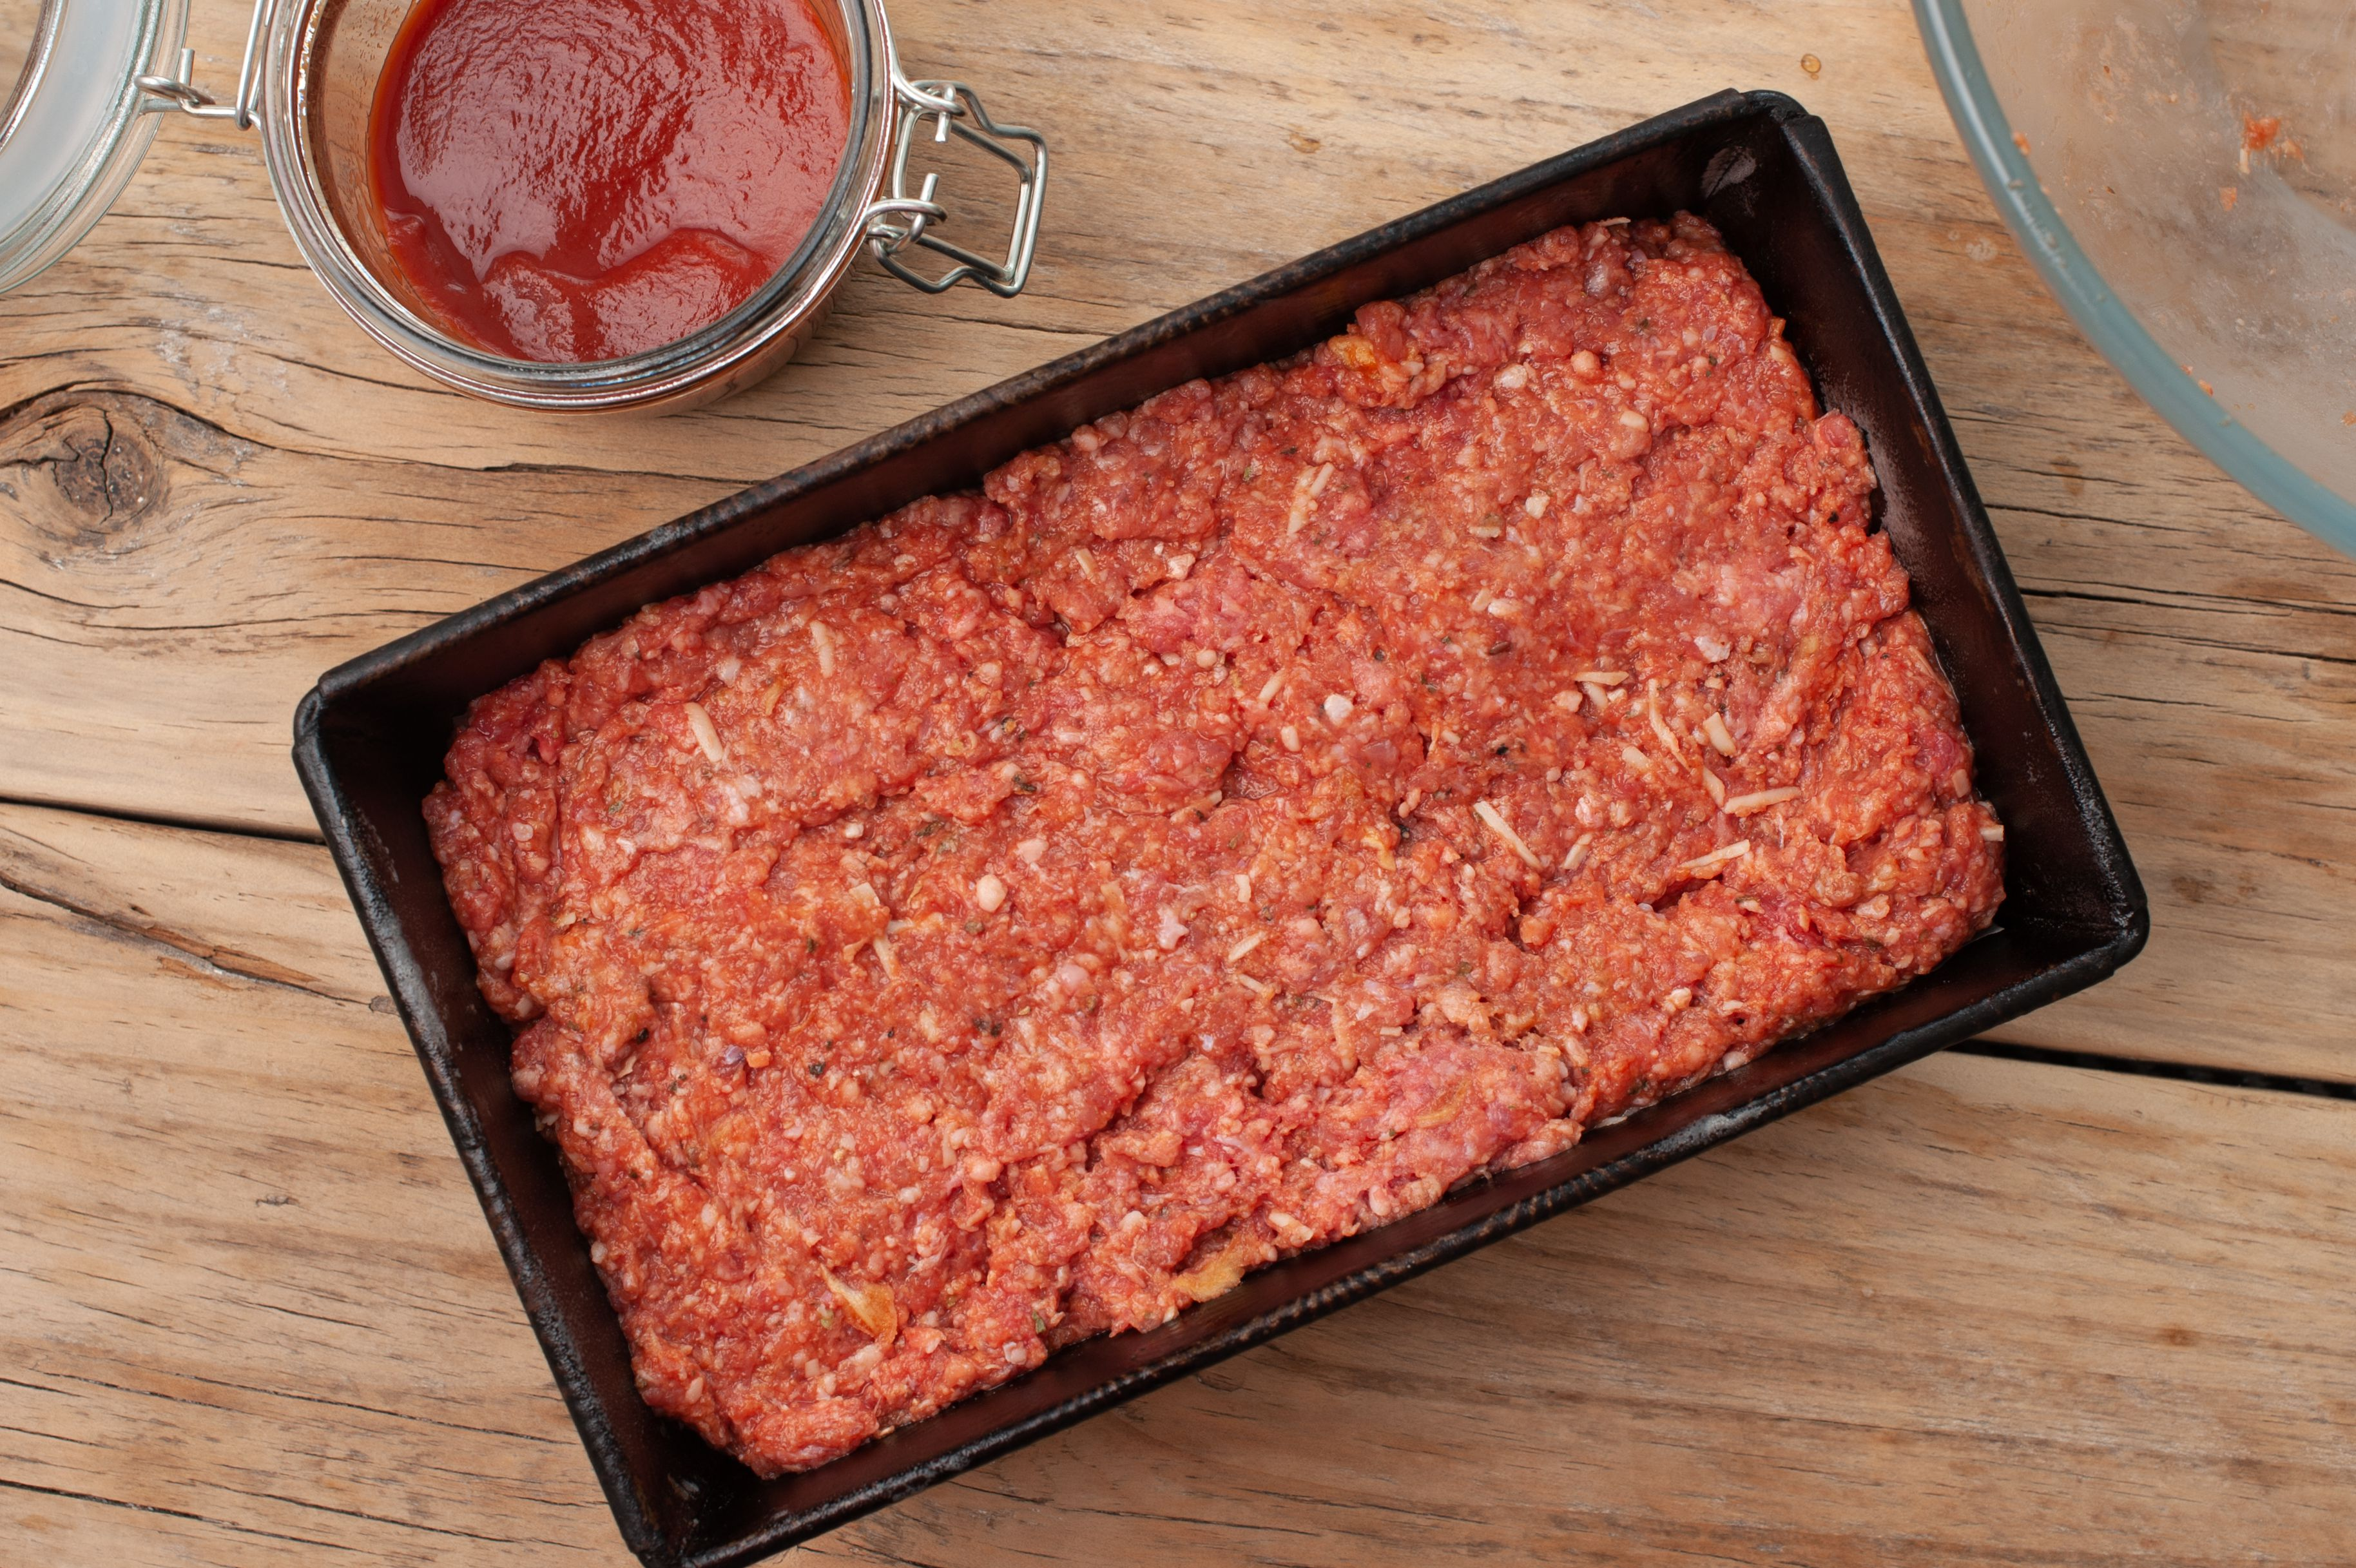 Pack meat into pan